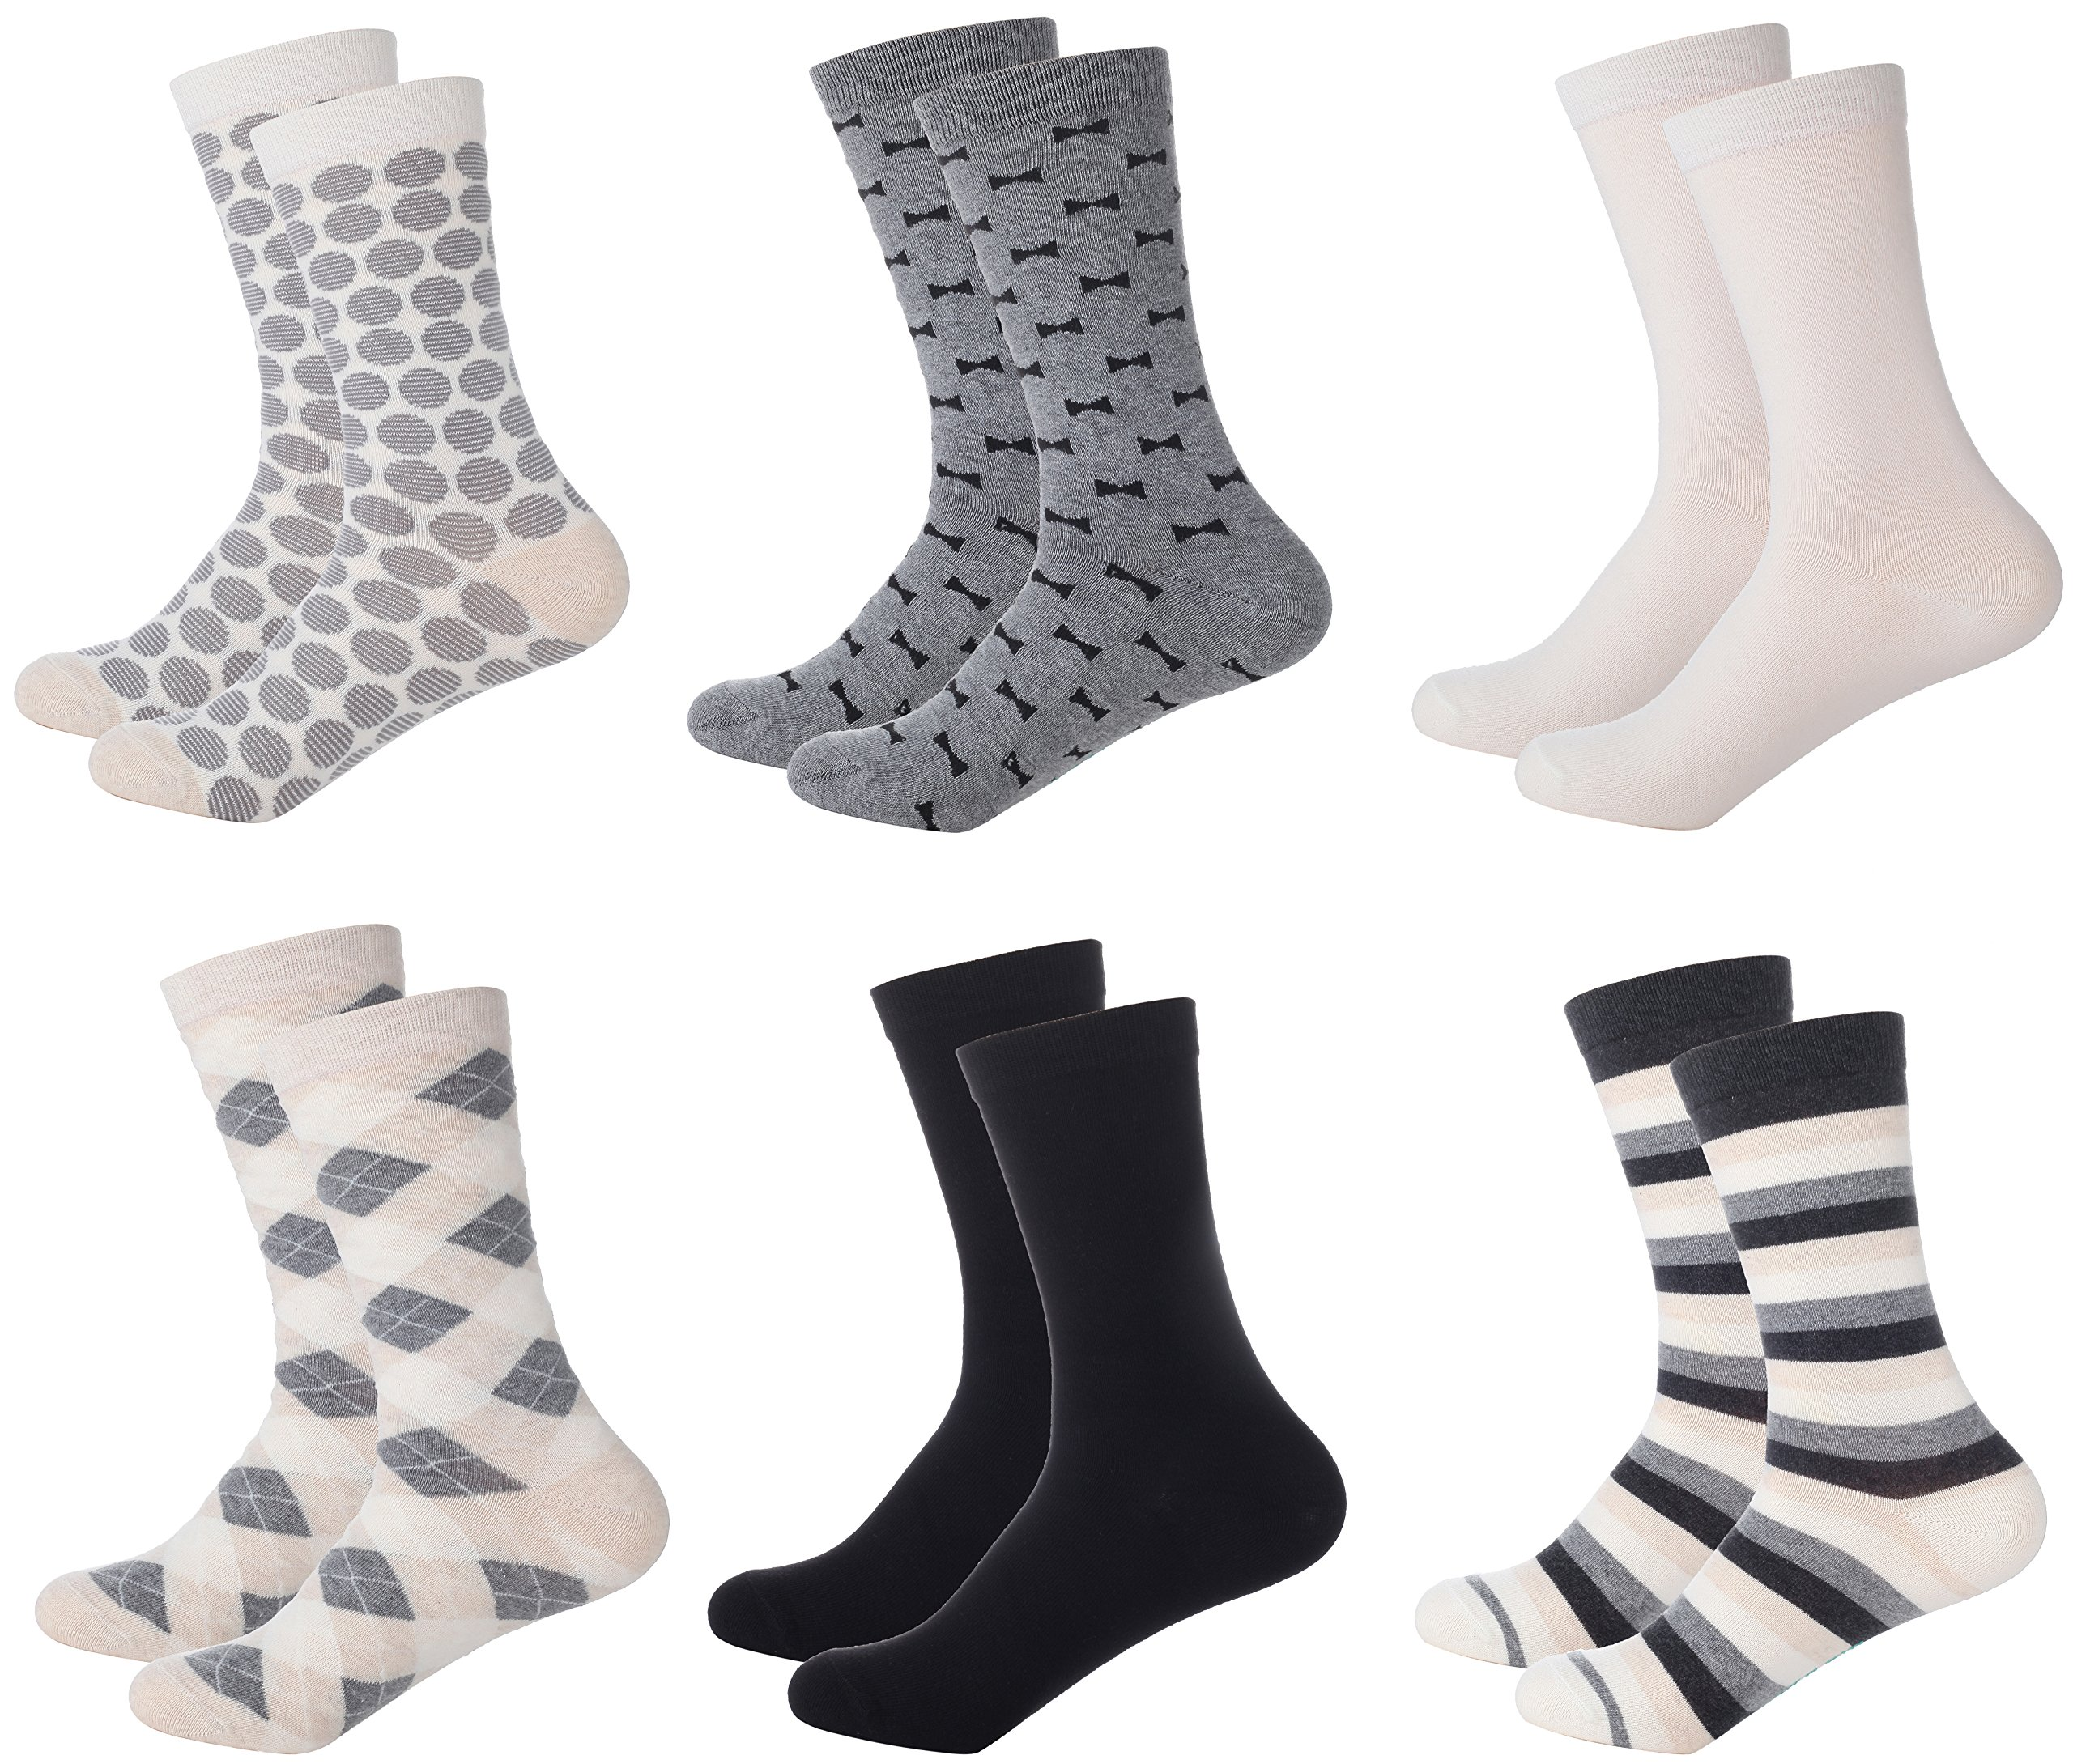 Mio Marino Womens Dress Socks - Colorful Patterned Socks for Women - 6 Pack Style 7-9-11 by Marino Avenue